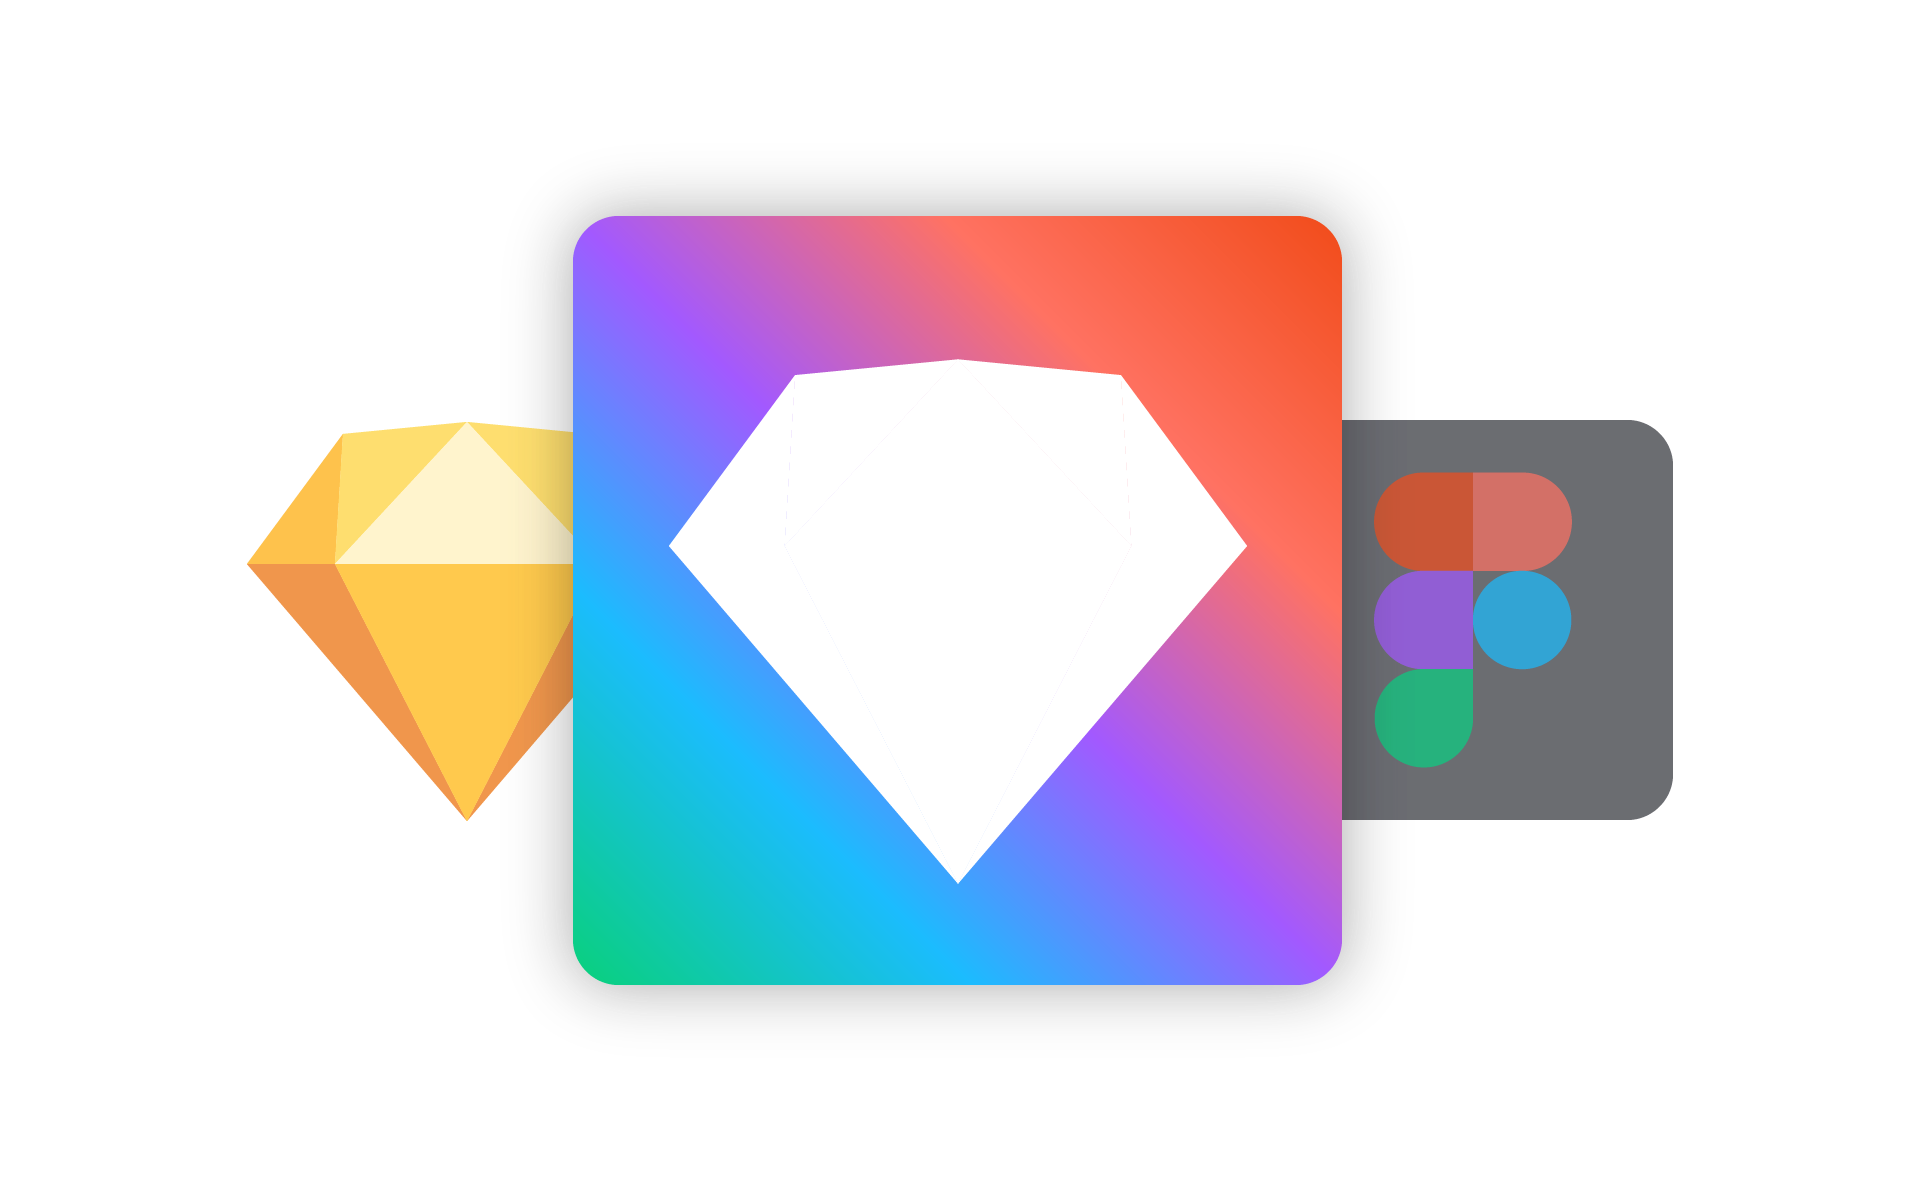 Why Sketch will buy Figma - Prototypr